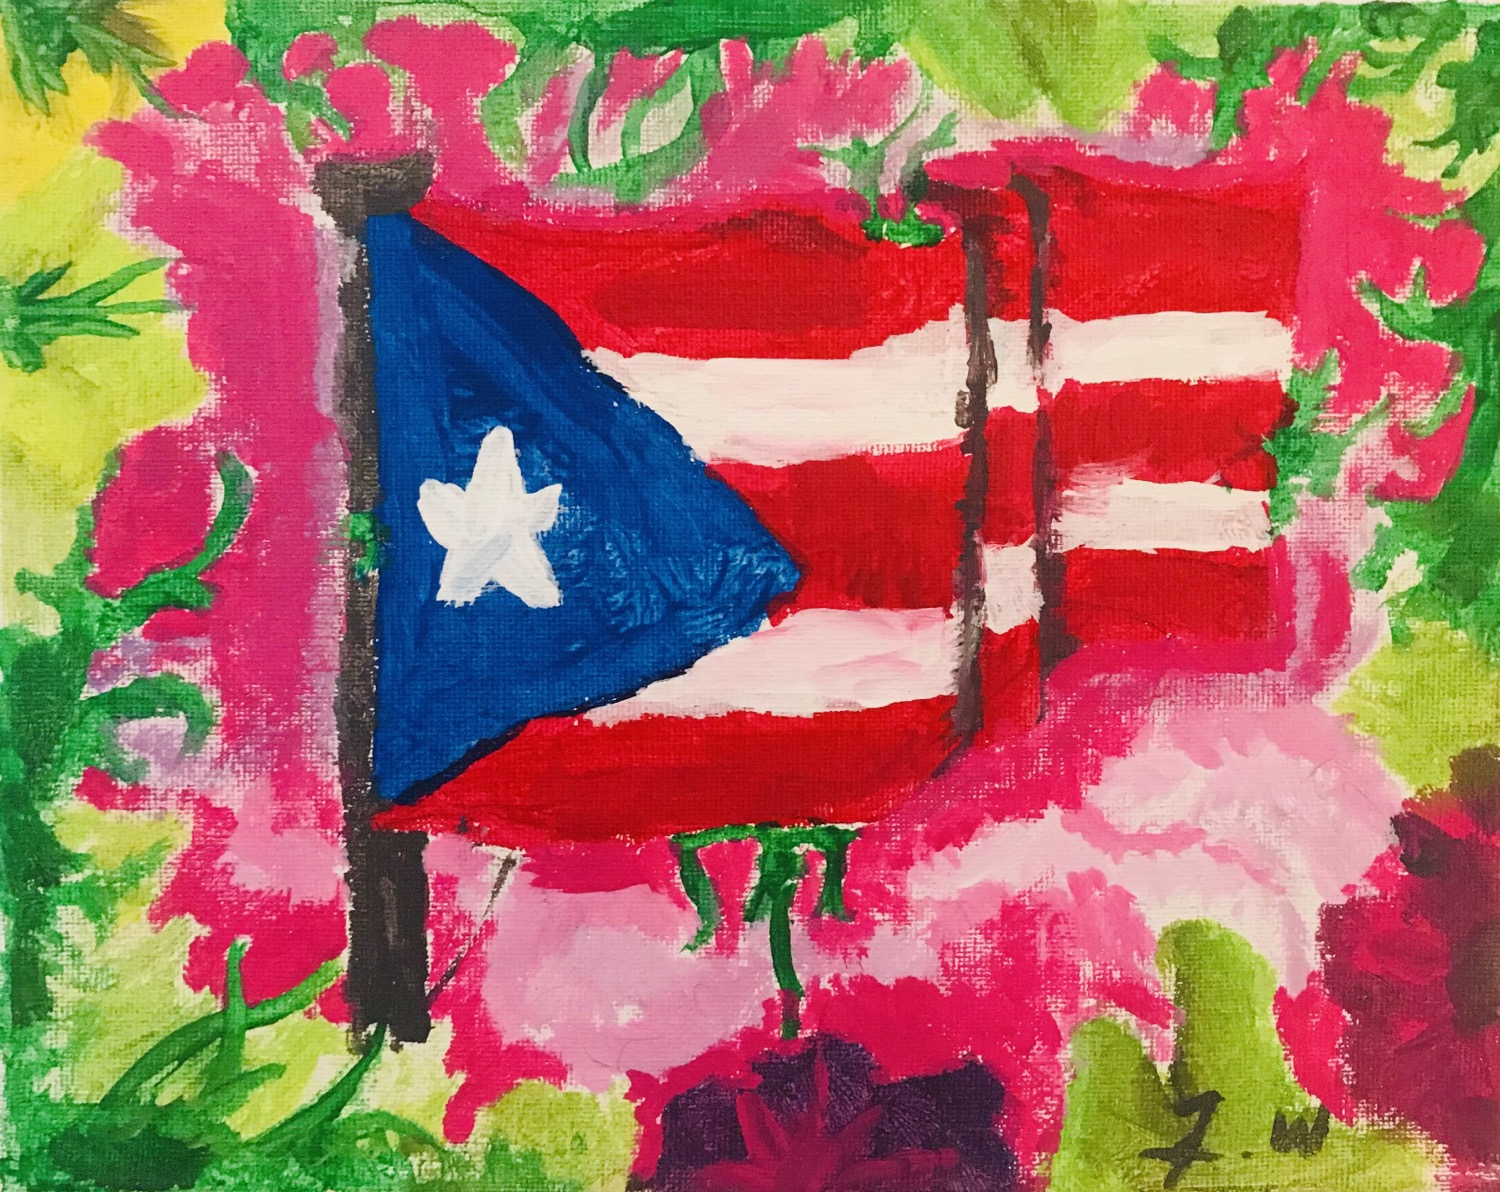 Puerto Rico Grows by Jaythan Williams